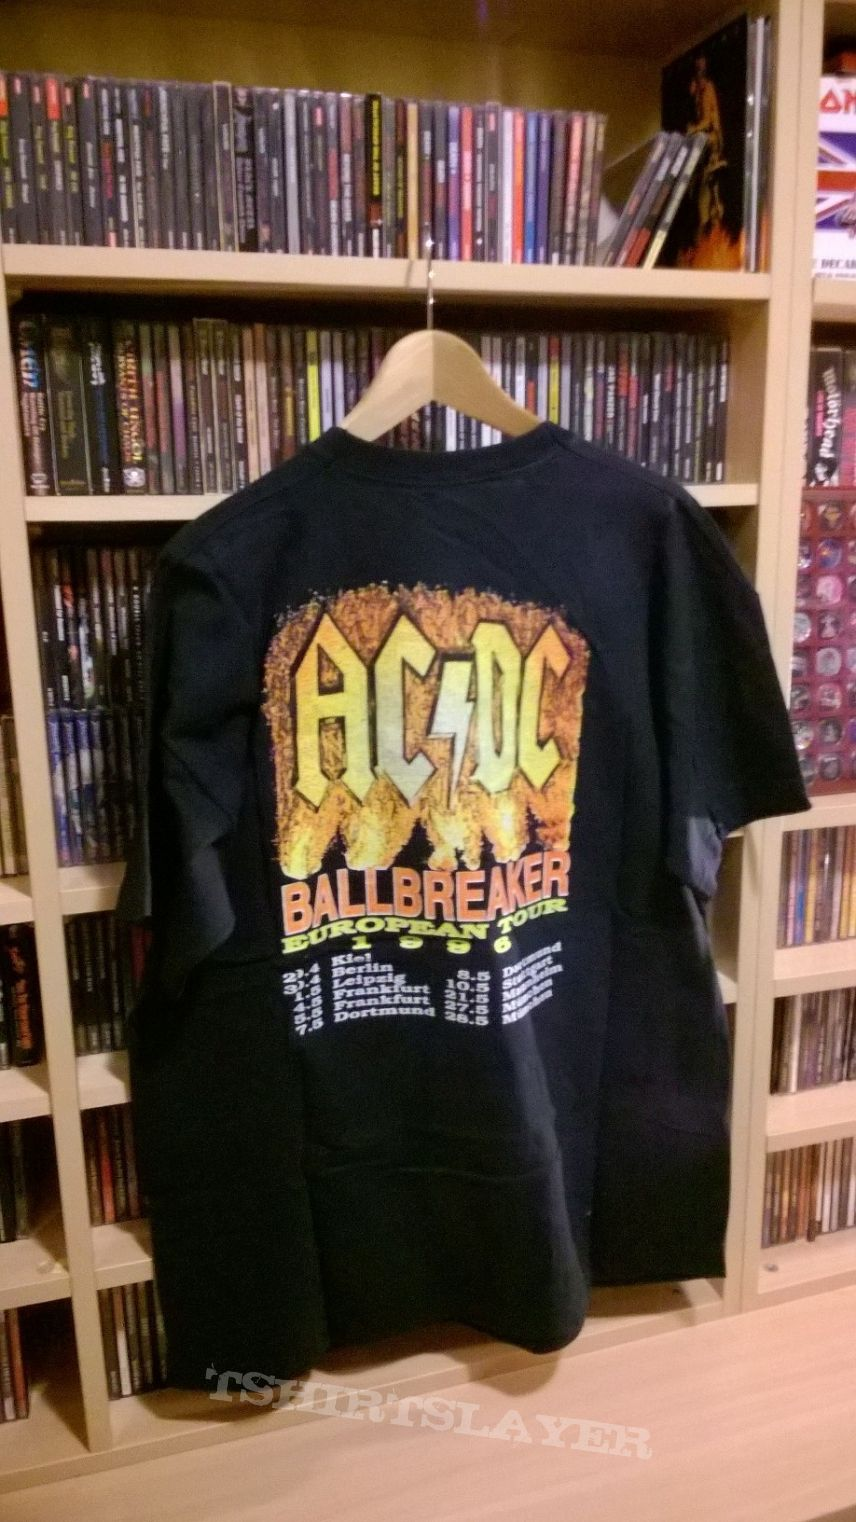 Ac-dc Ballbreaker Tour Europe 1996